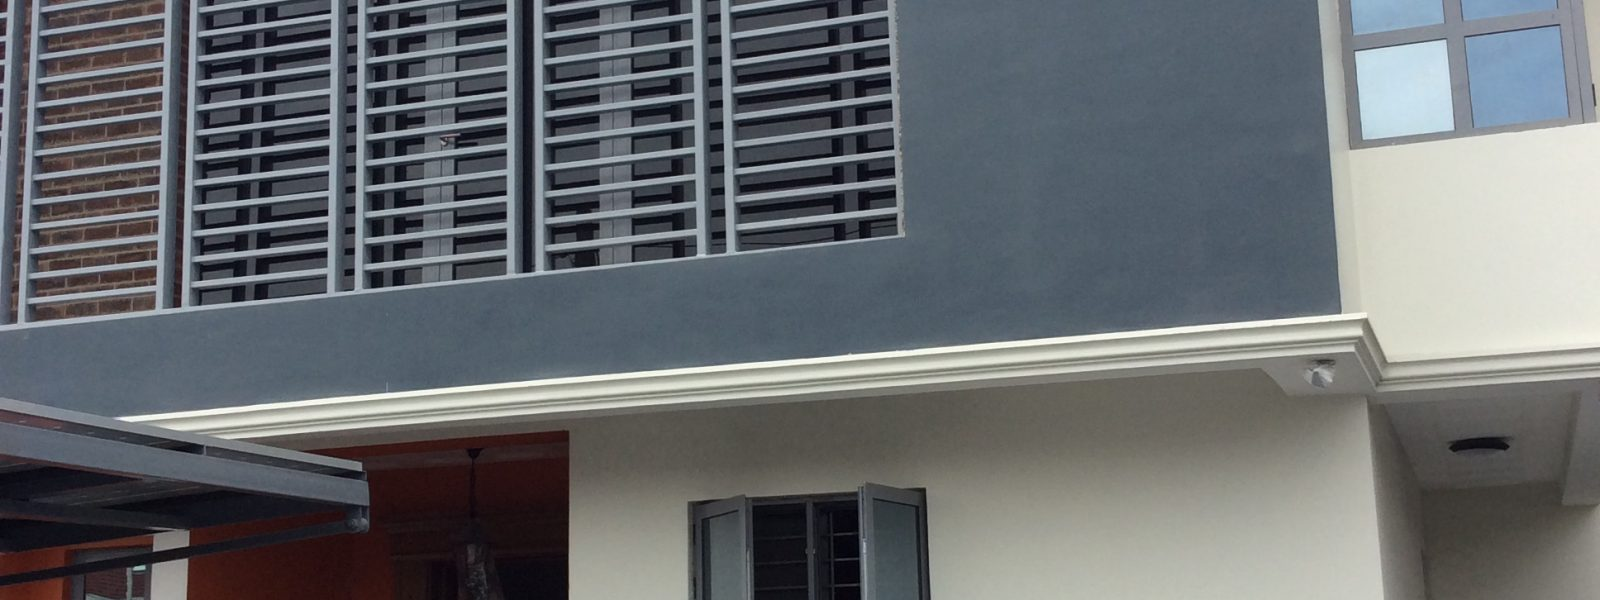 "LOVELY 5 BEDROOM DETACHED DUPLEX IN LEKKI PHASE 1<font color=""#a30000;"">(For Sale: N210 Million)</font>"